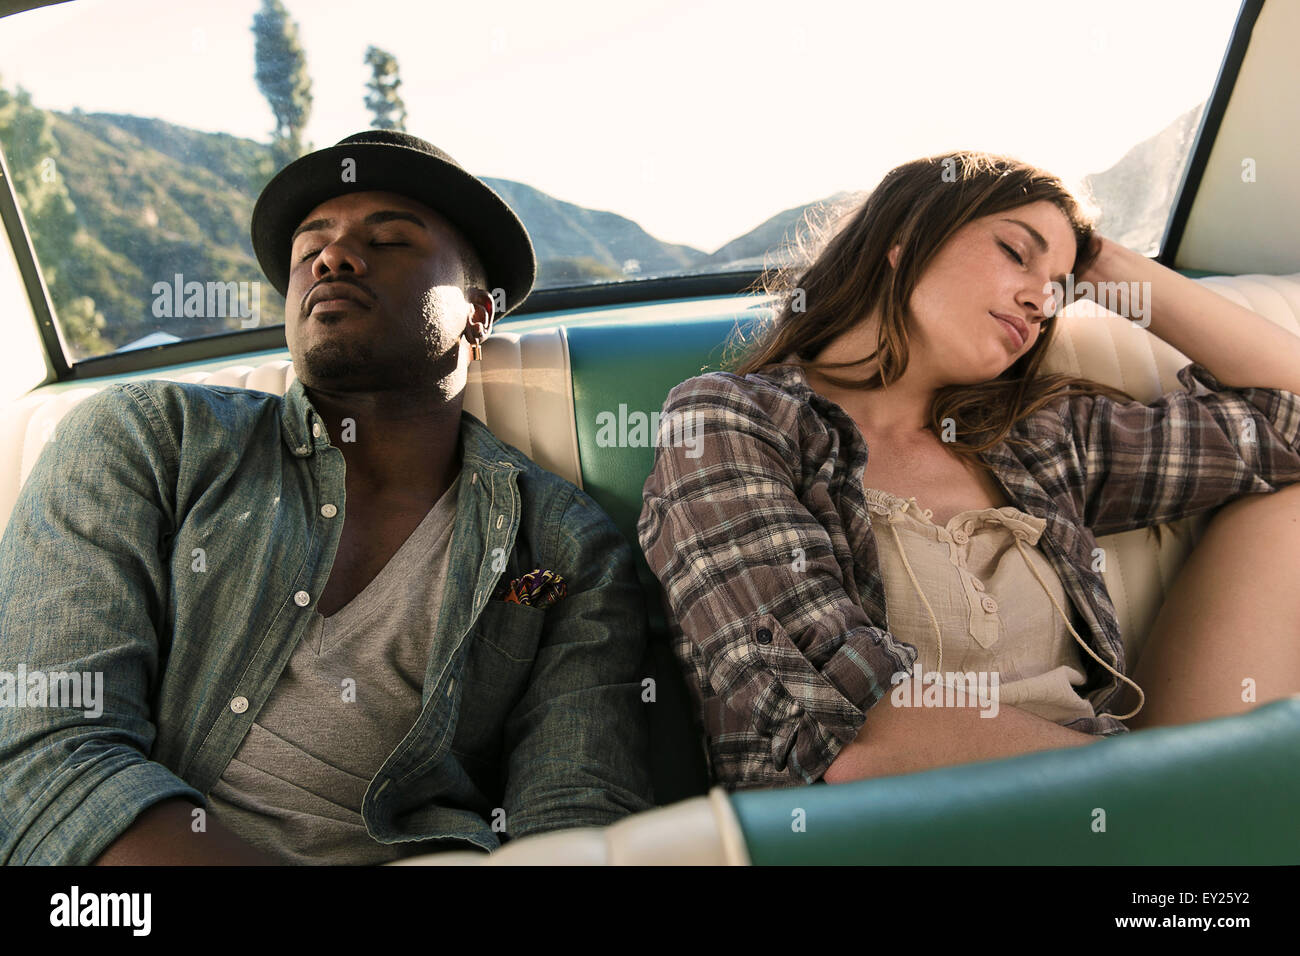 Couple asleep in back seat of car - Stock Image